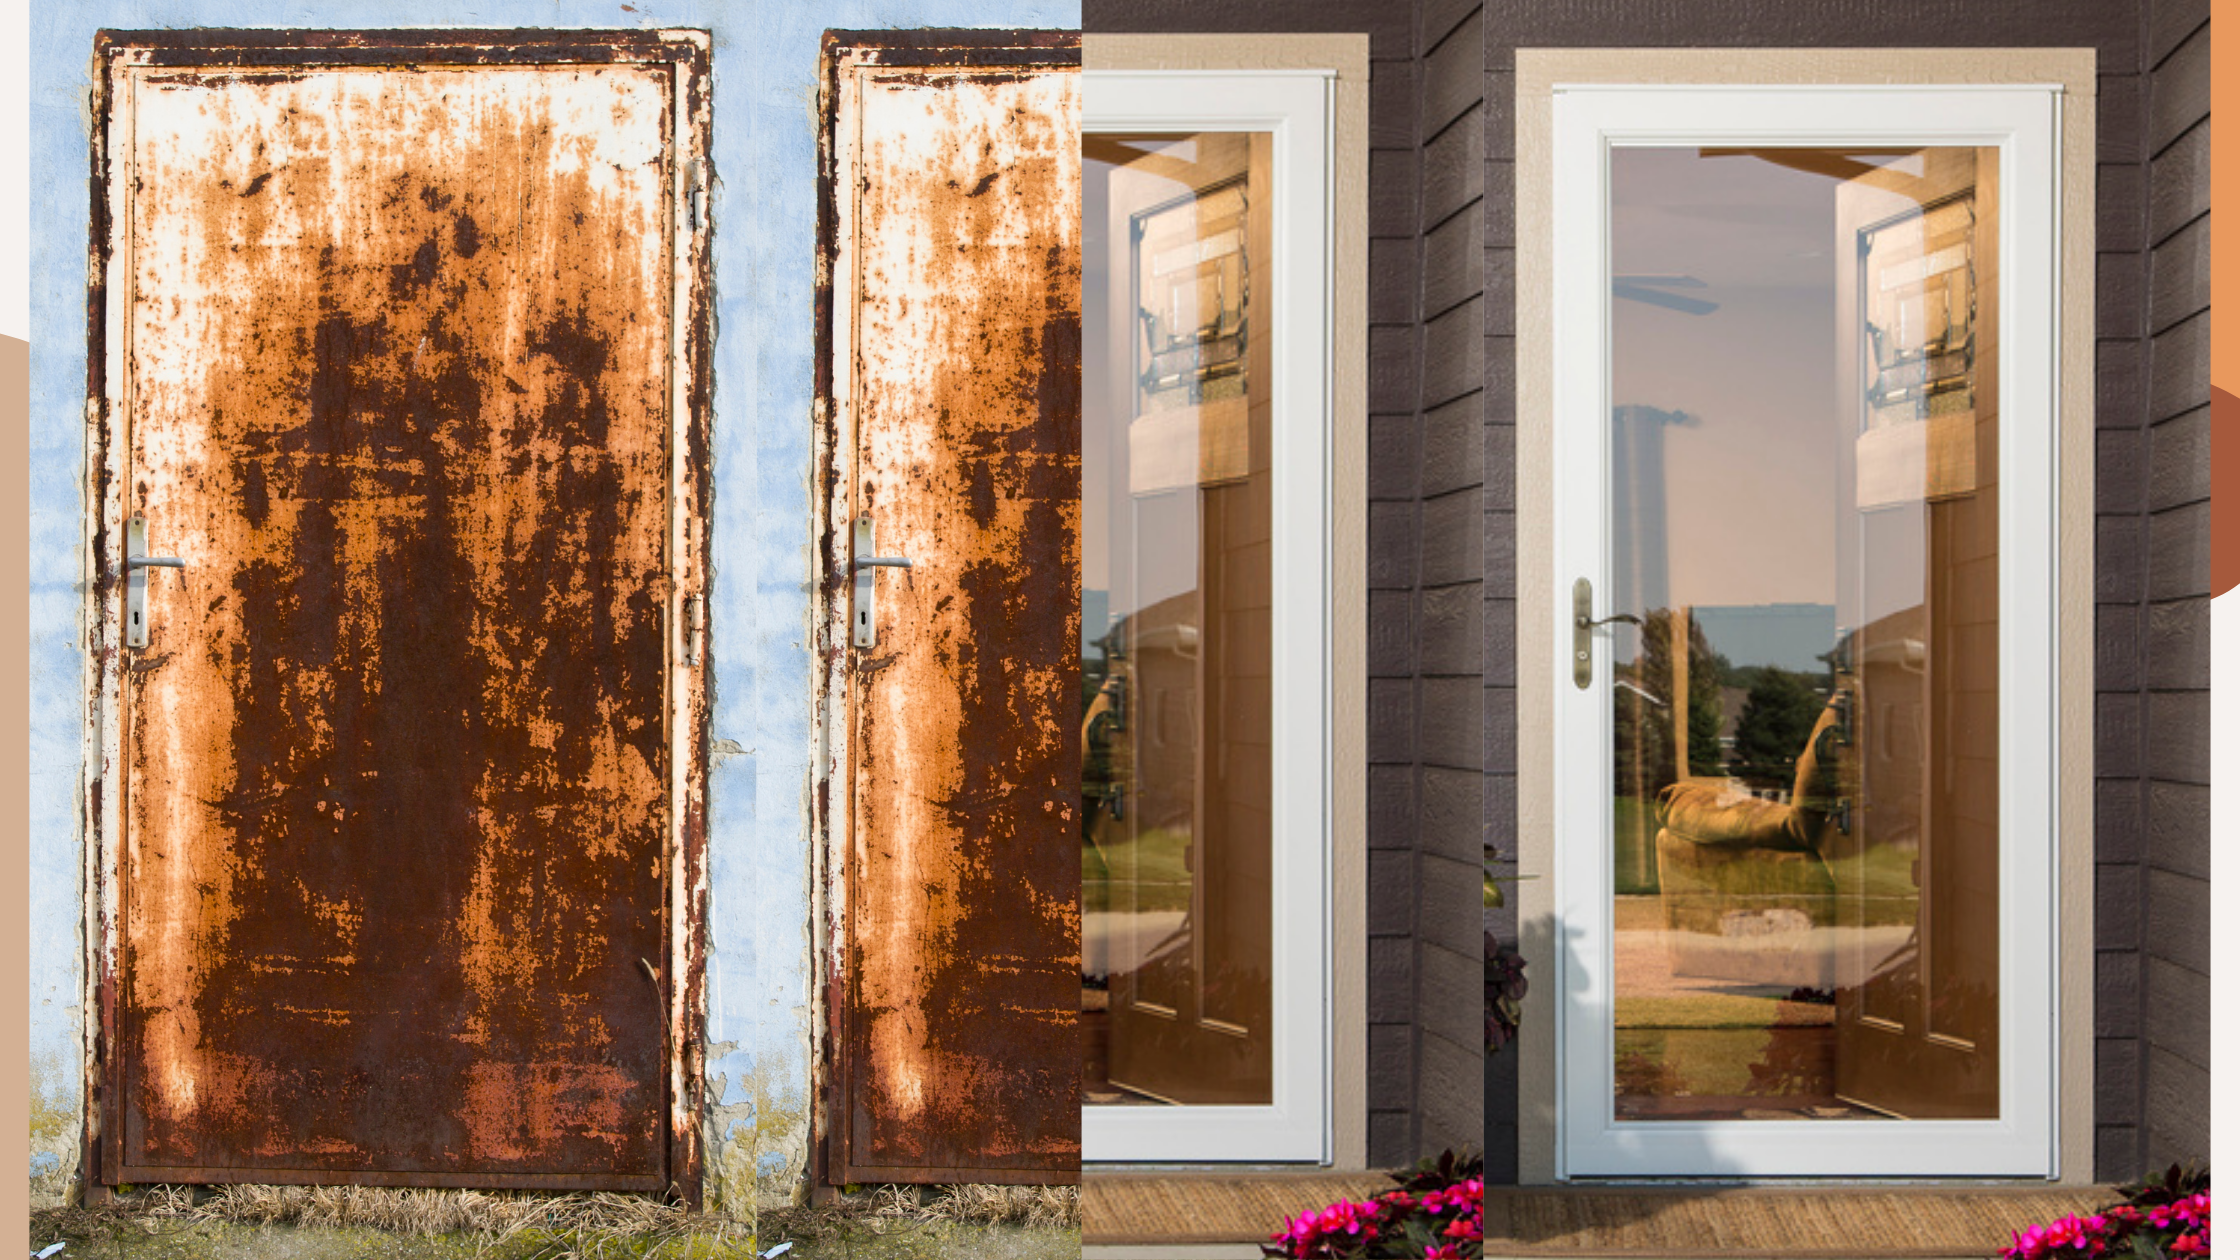 The Truth About Rust on Your Door